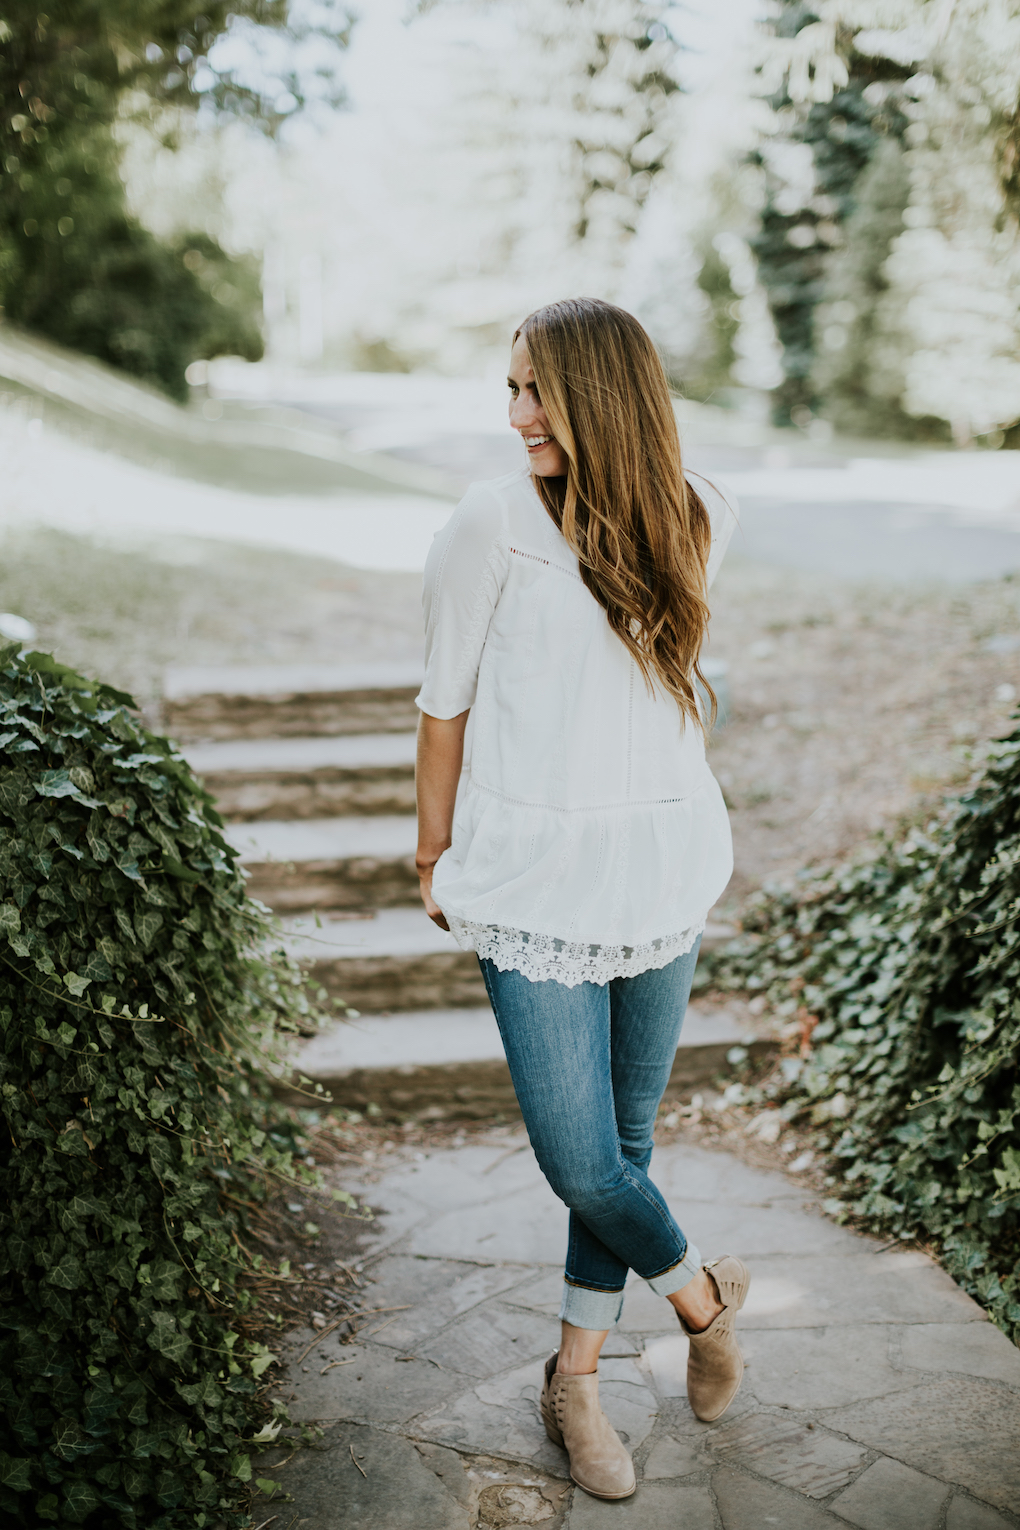 girl standing in white lace top with jeans and brown booties on long brown loosely curled hair with caramel highlights